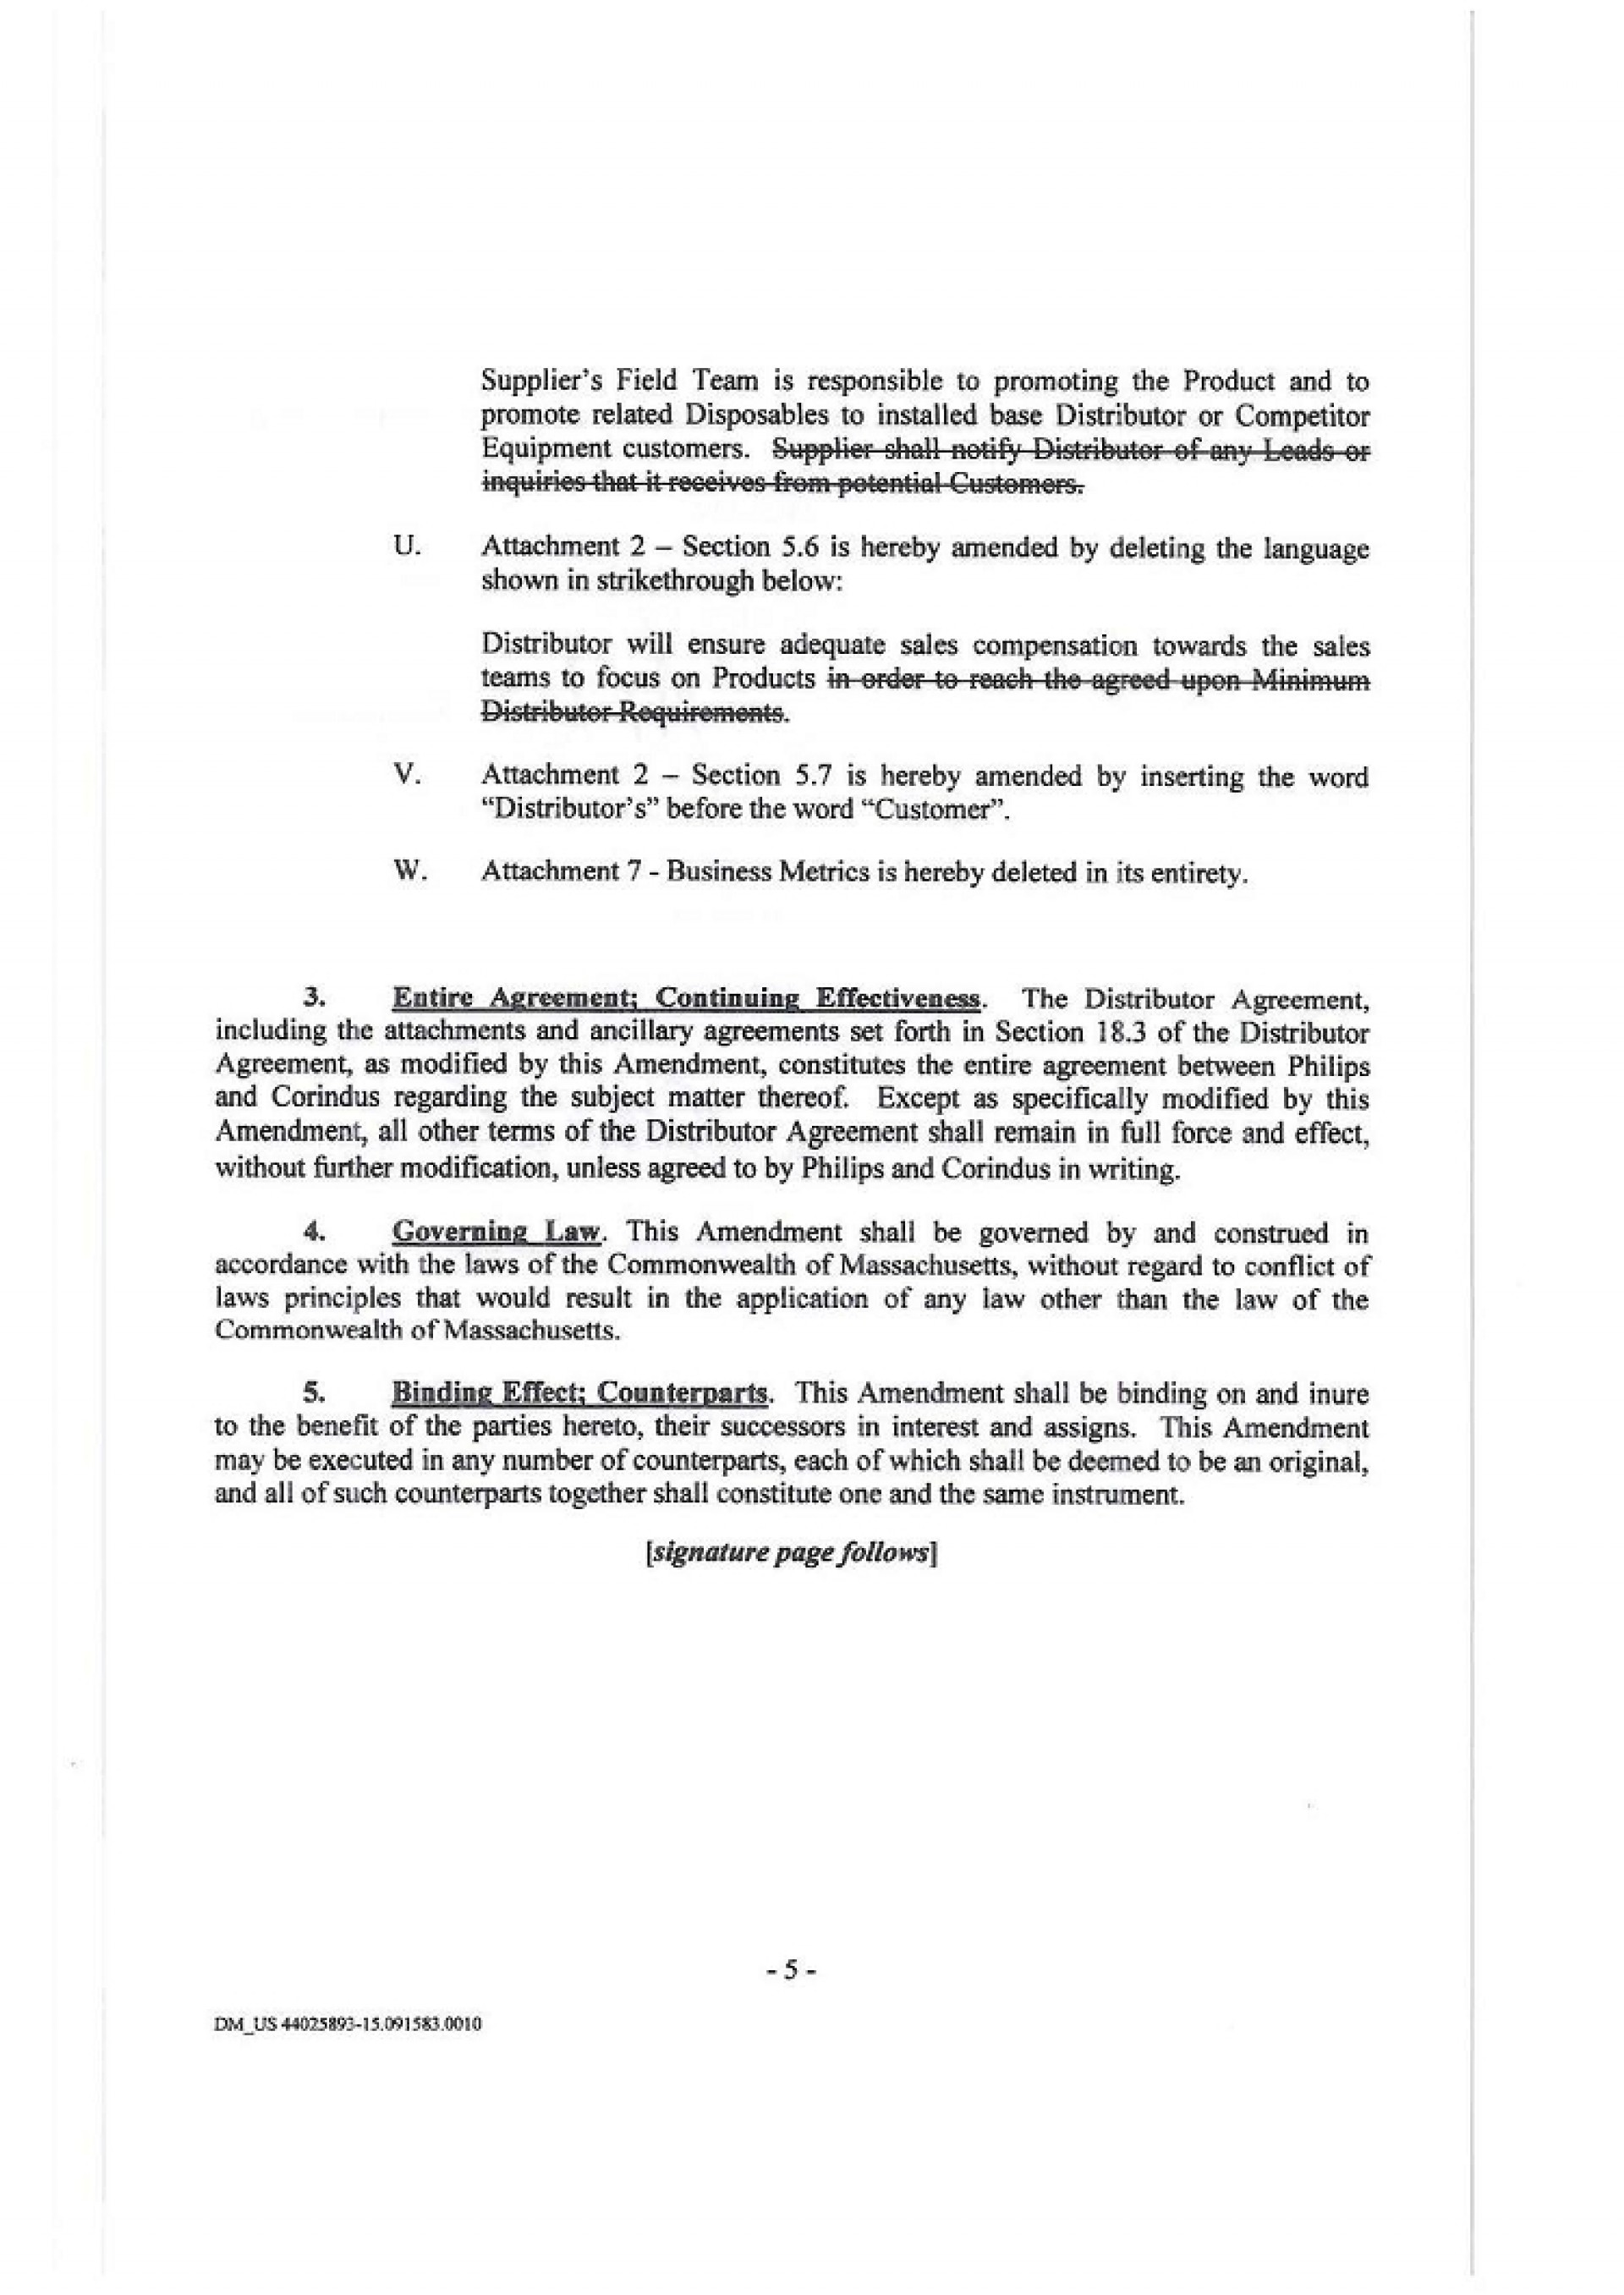 009 Outstanding Exclusive Distribution Agreement Template Canada High Resolution 1920